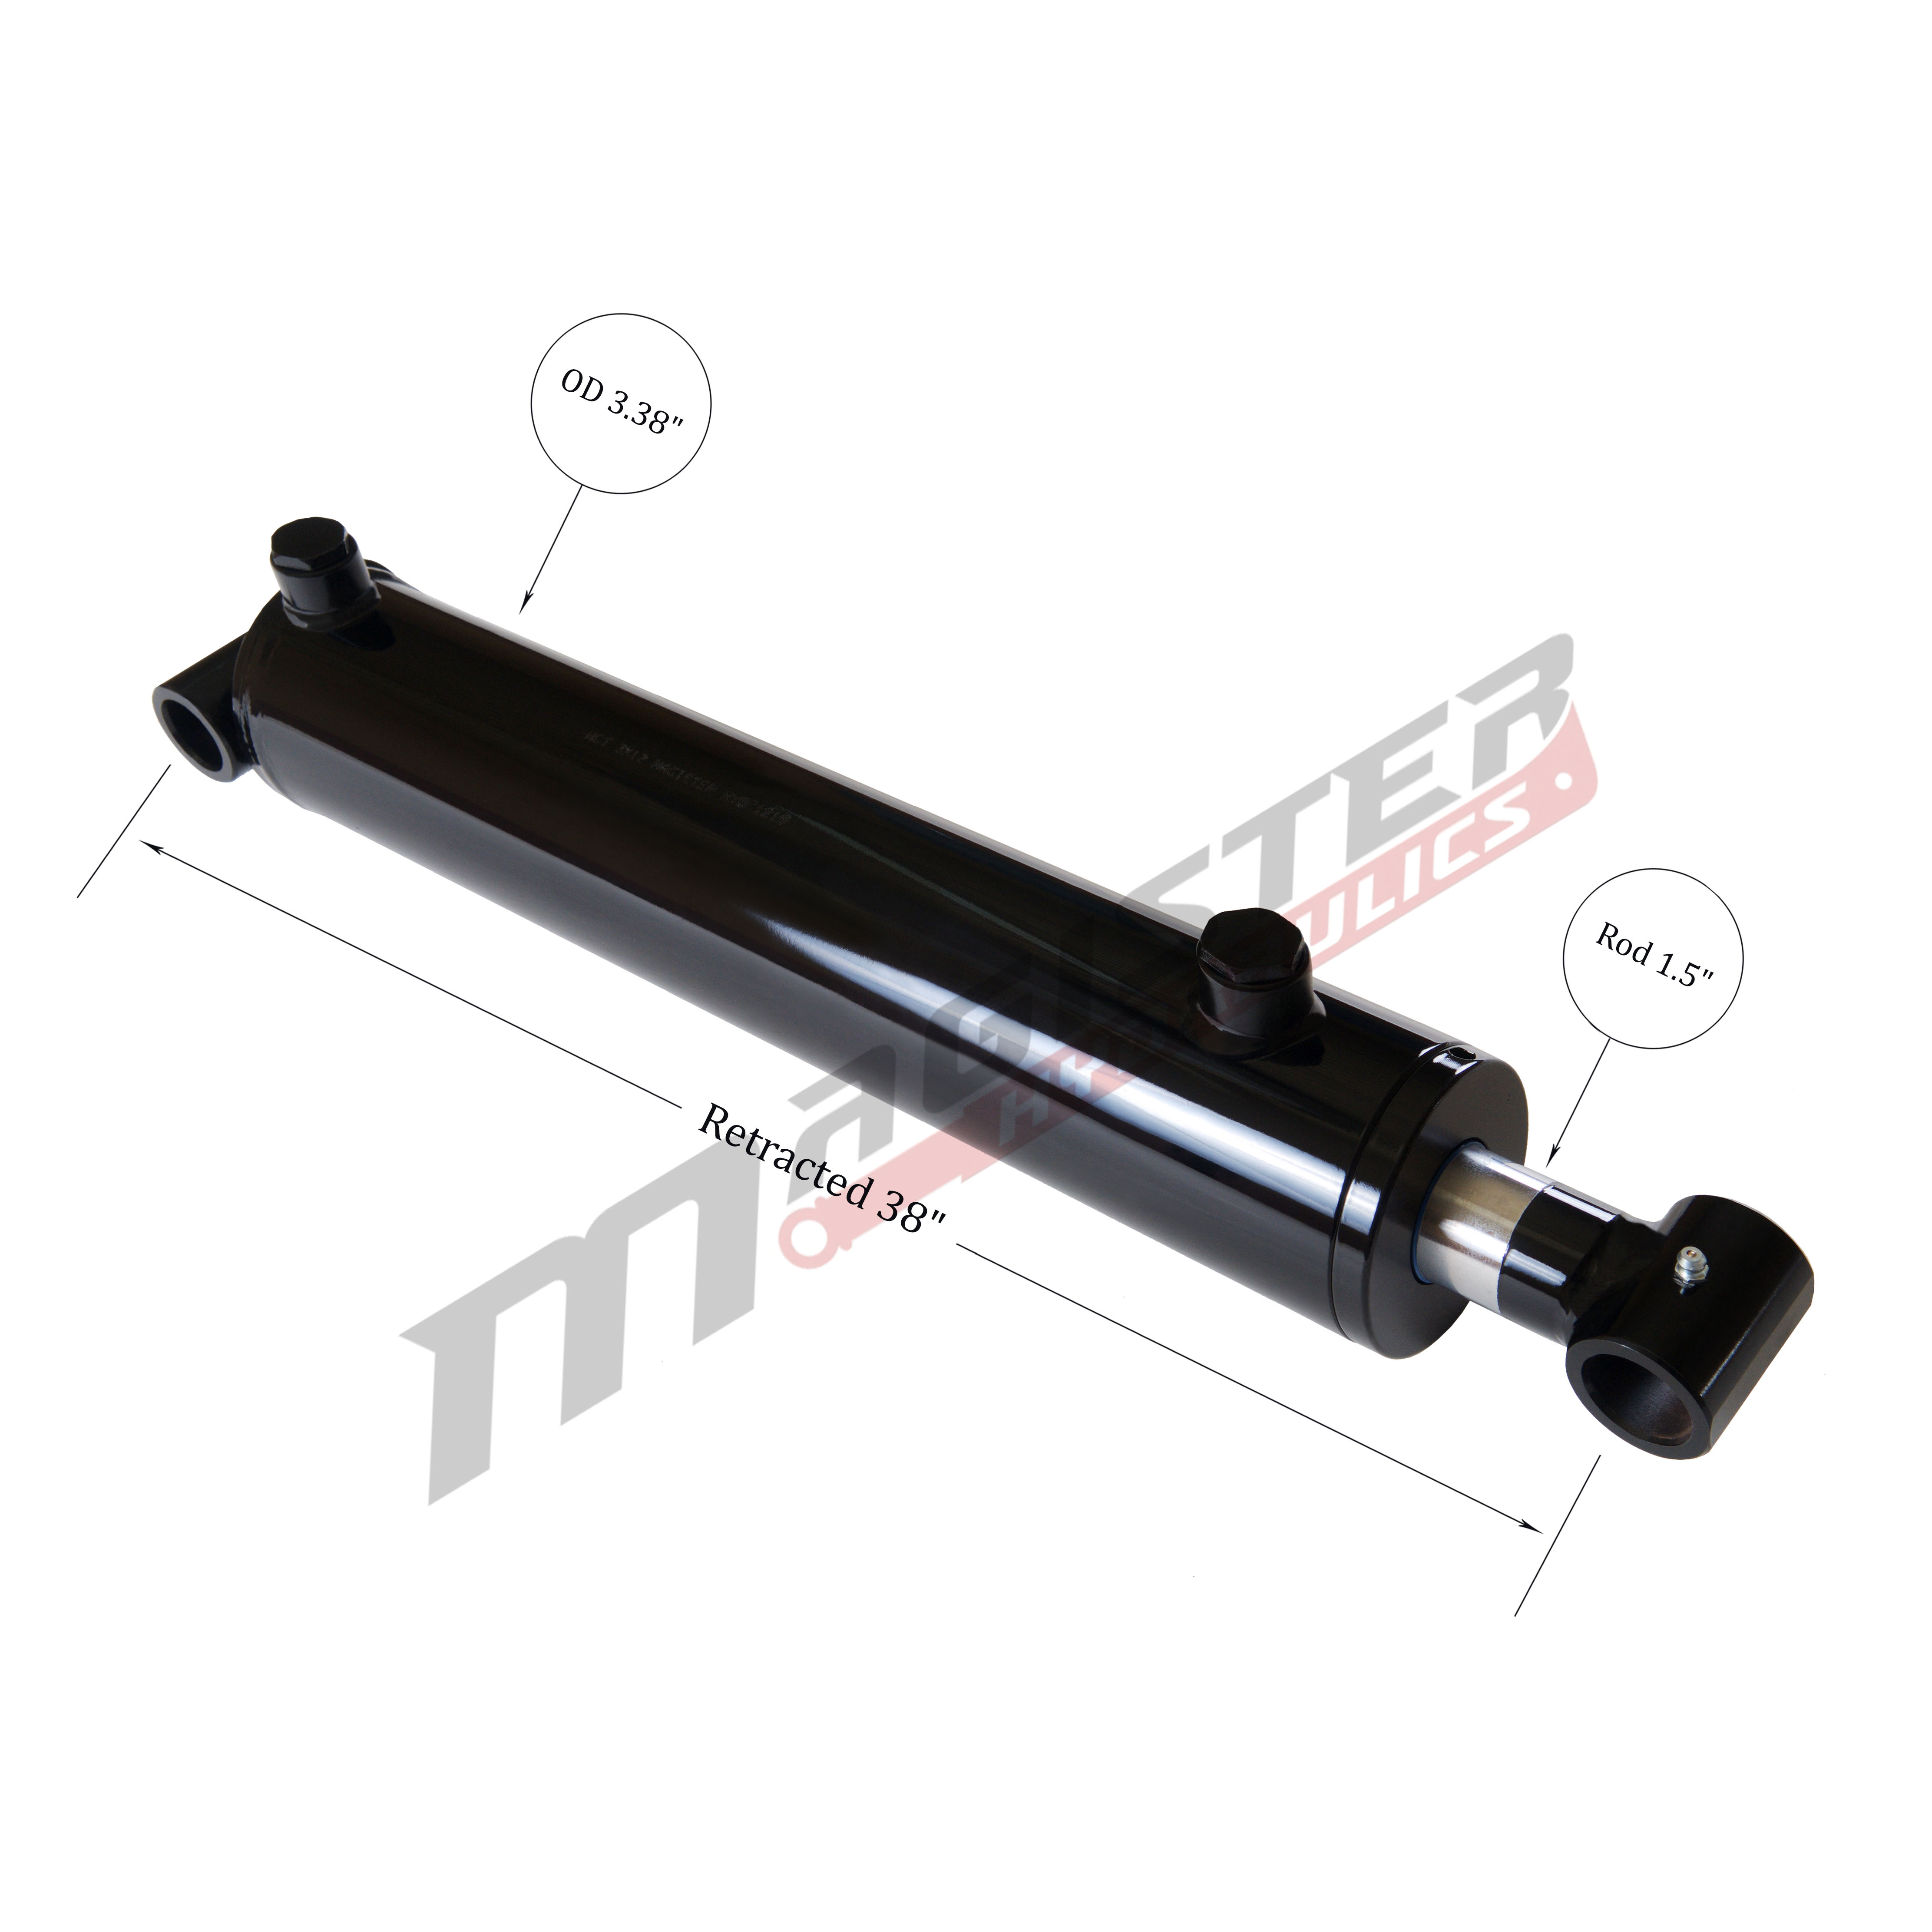 3 bore x 30 stroke hydraulic cylinder, welded cross tube double acting cylinder | Magister Hydraulics